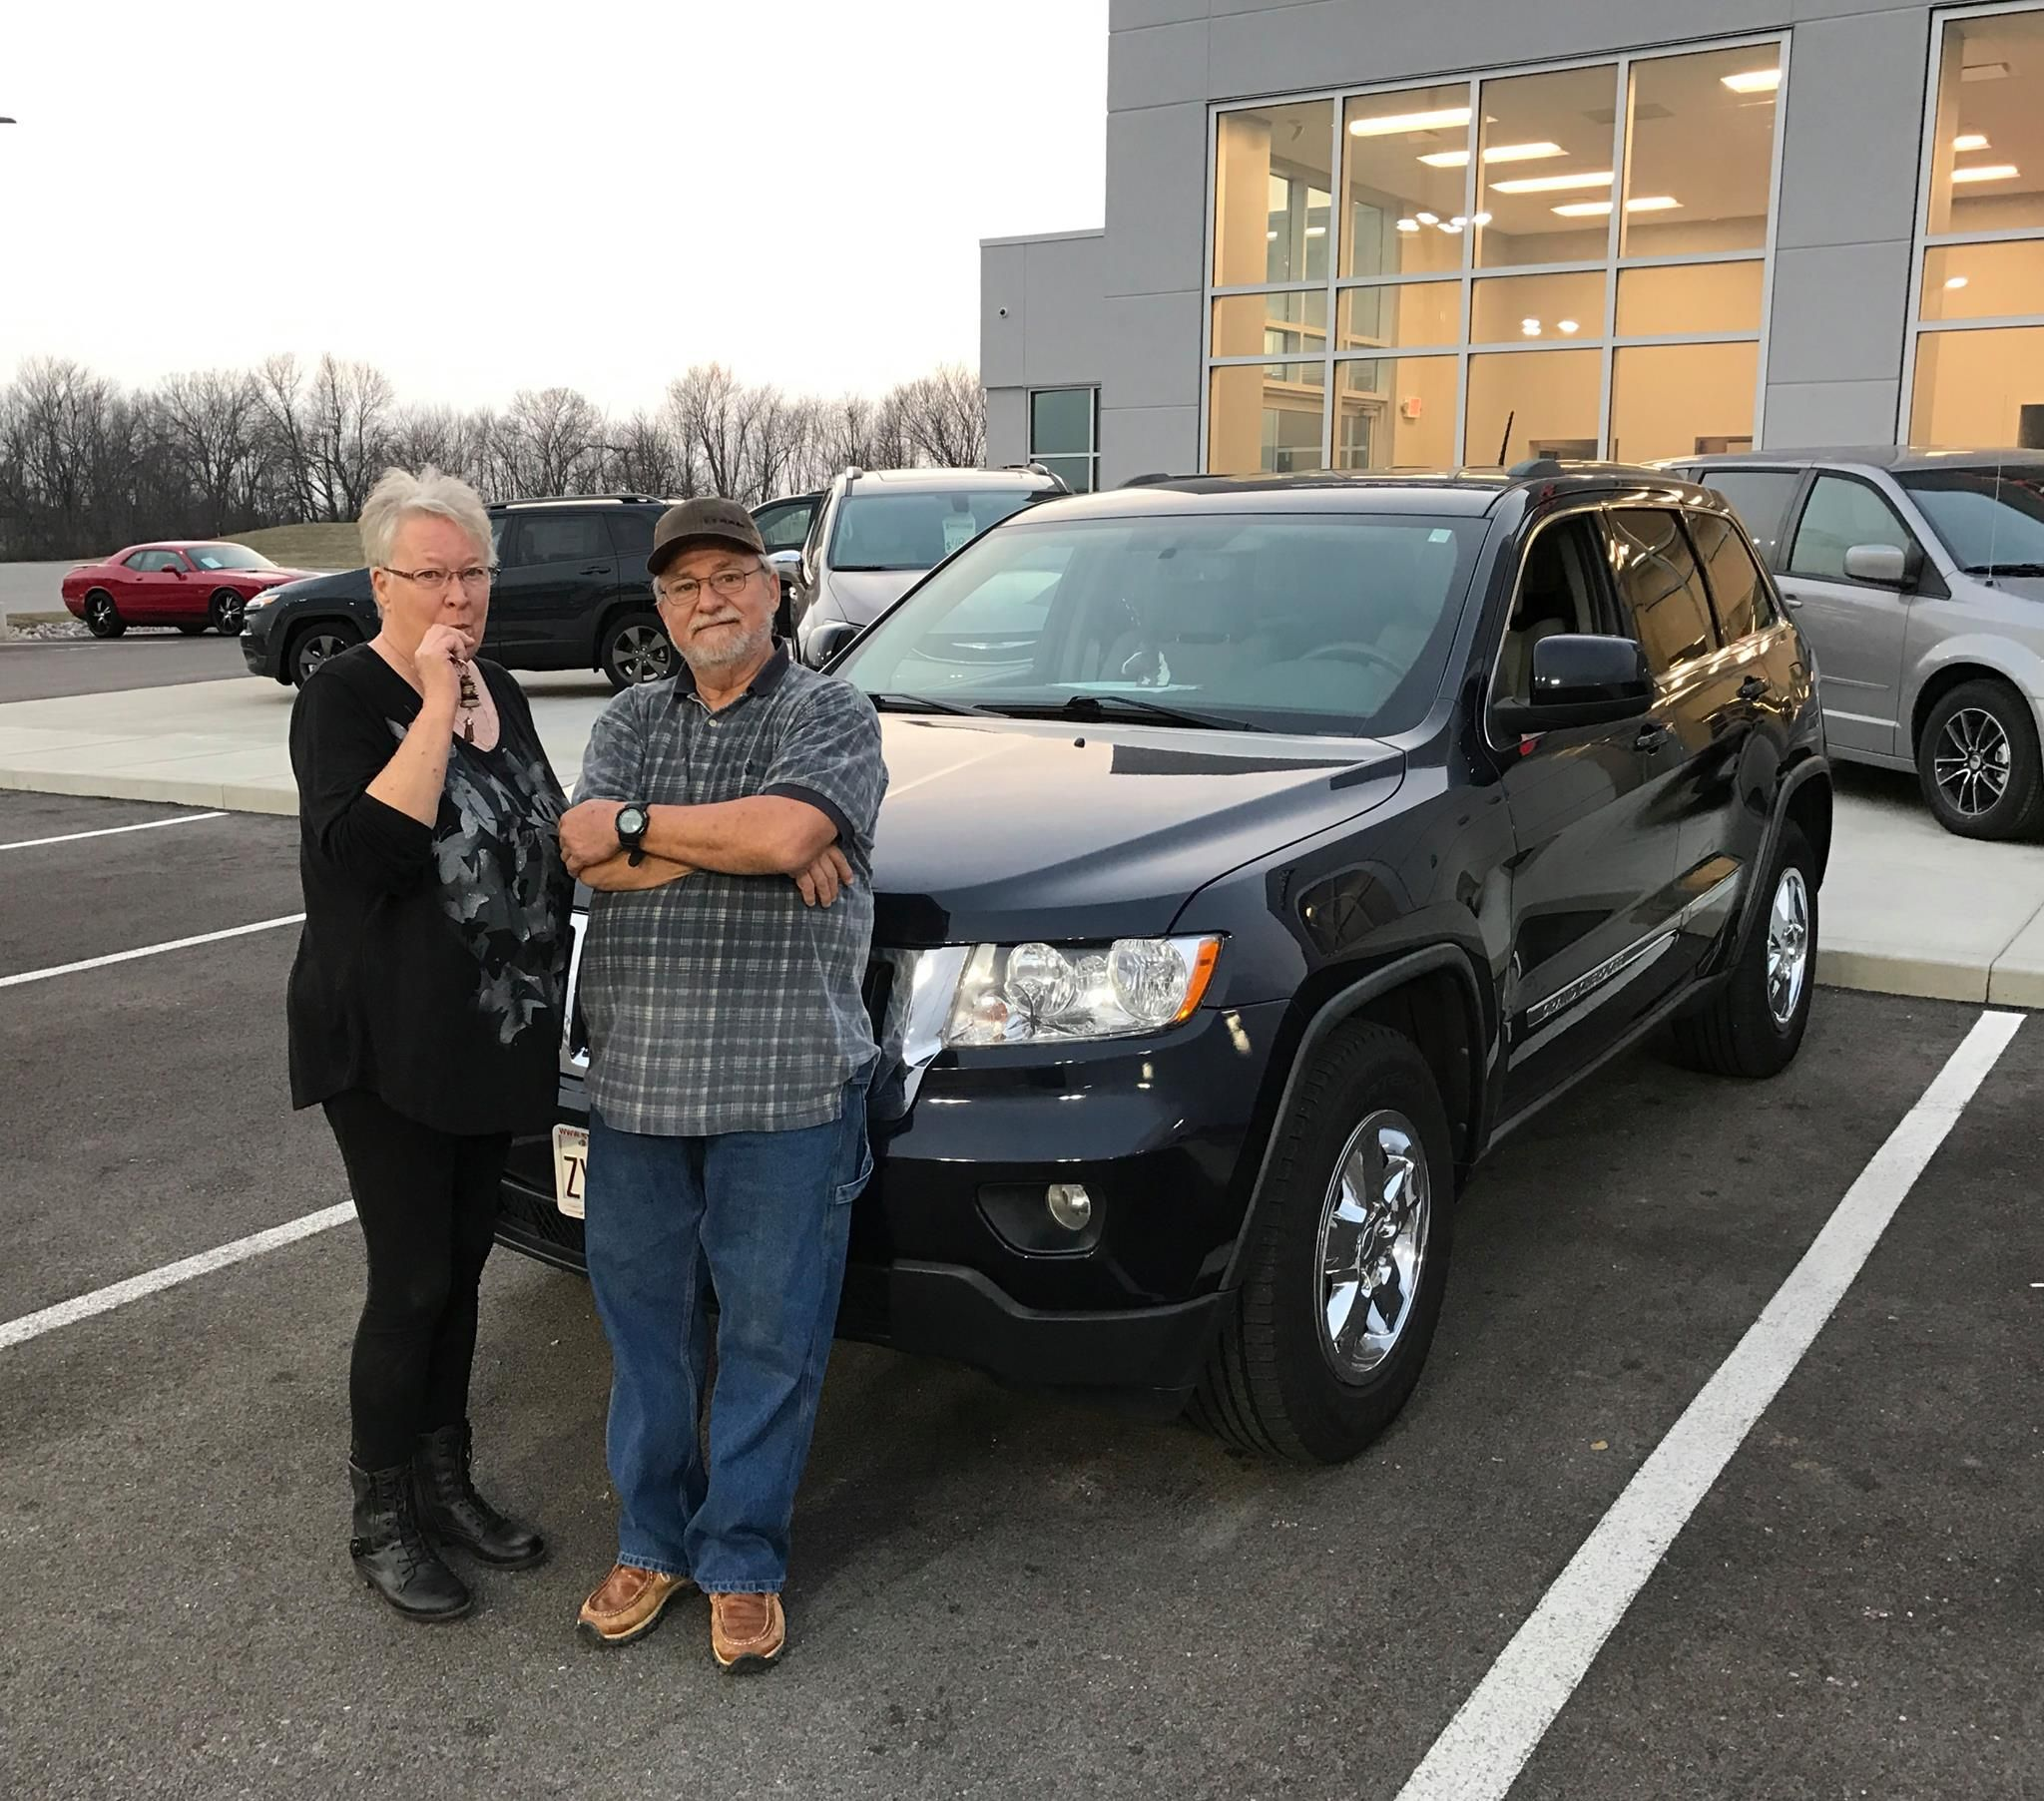 We Would Like To Congratulate Mindy And Terry On Their Purchase Of